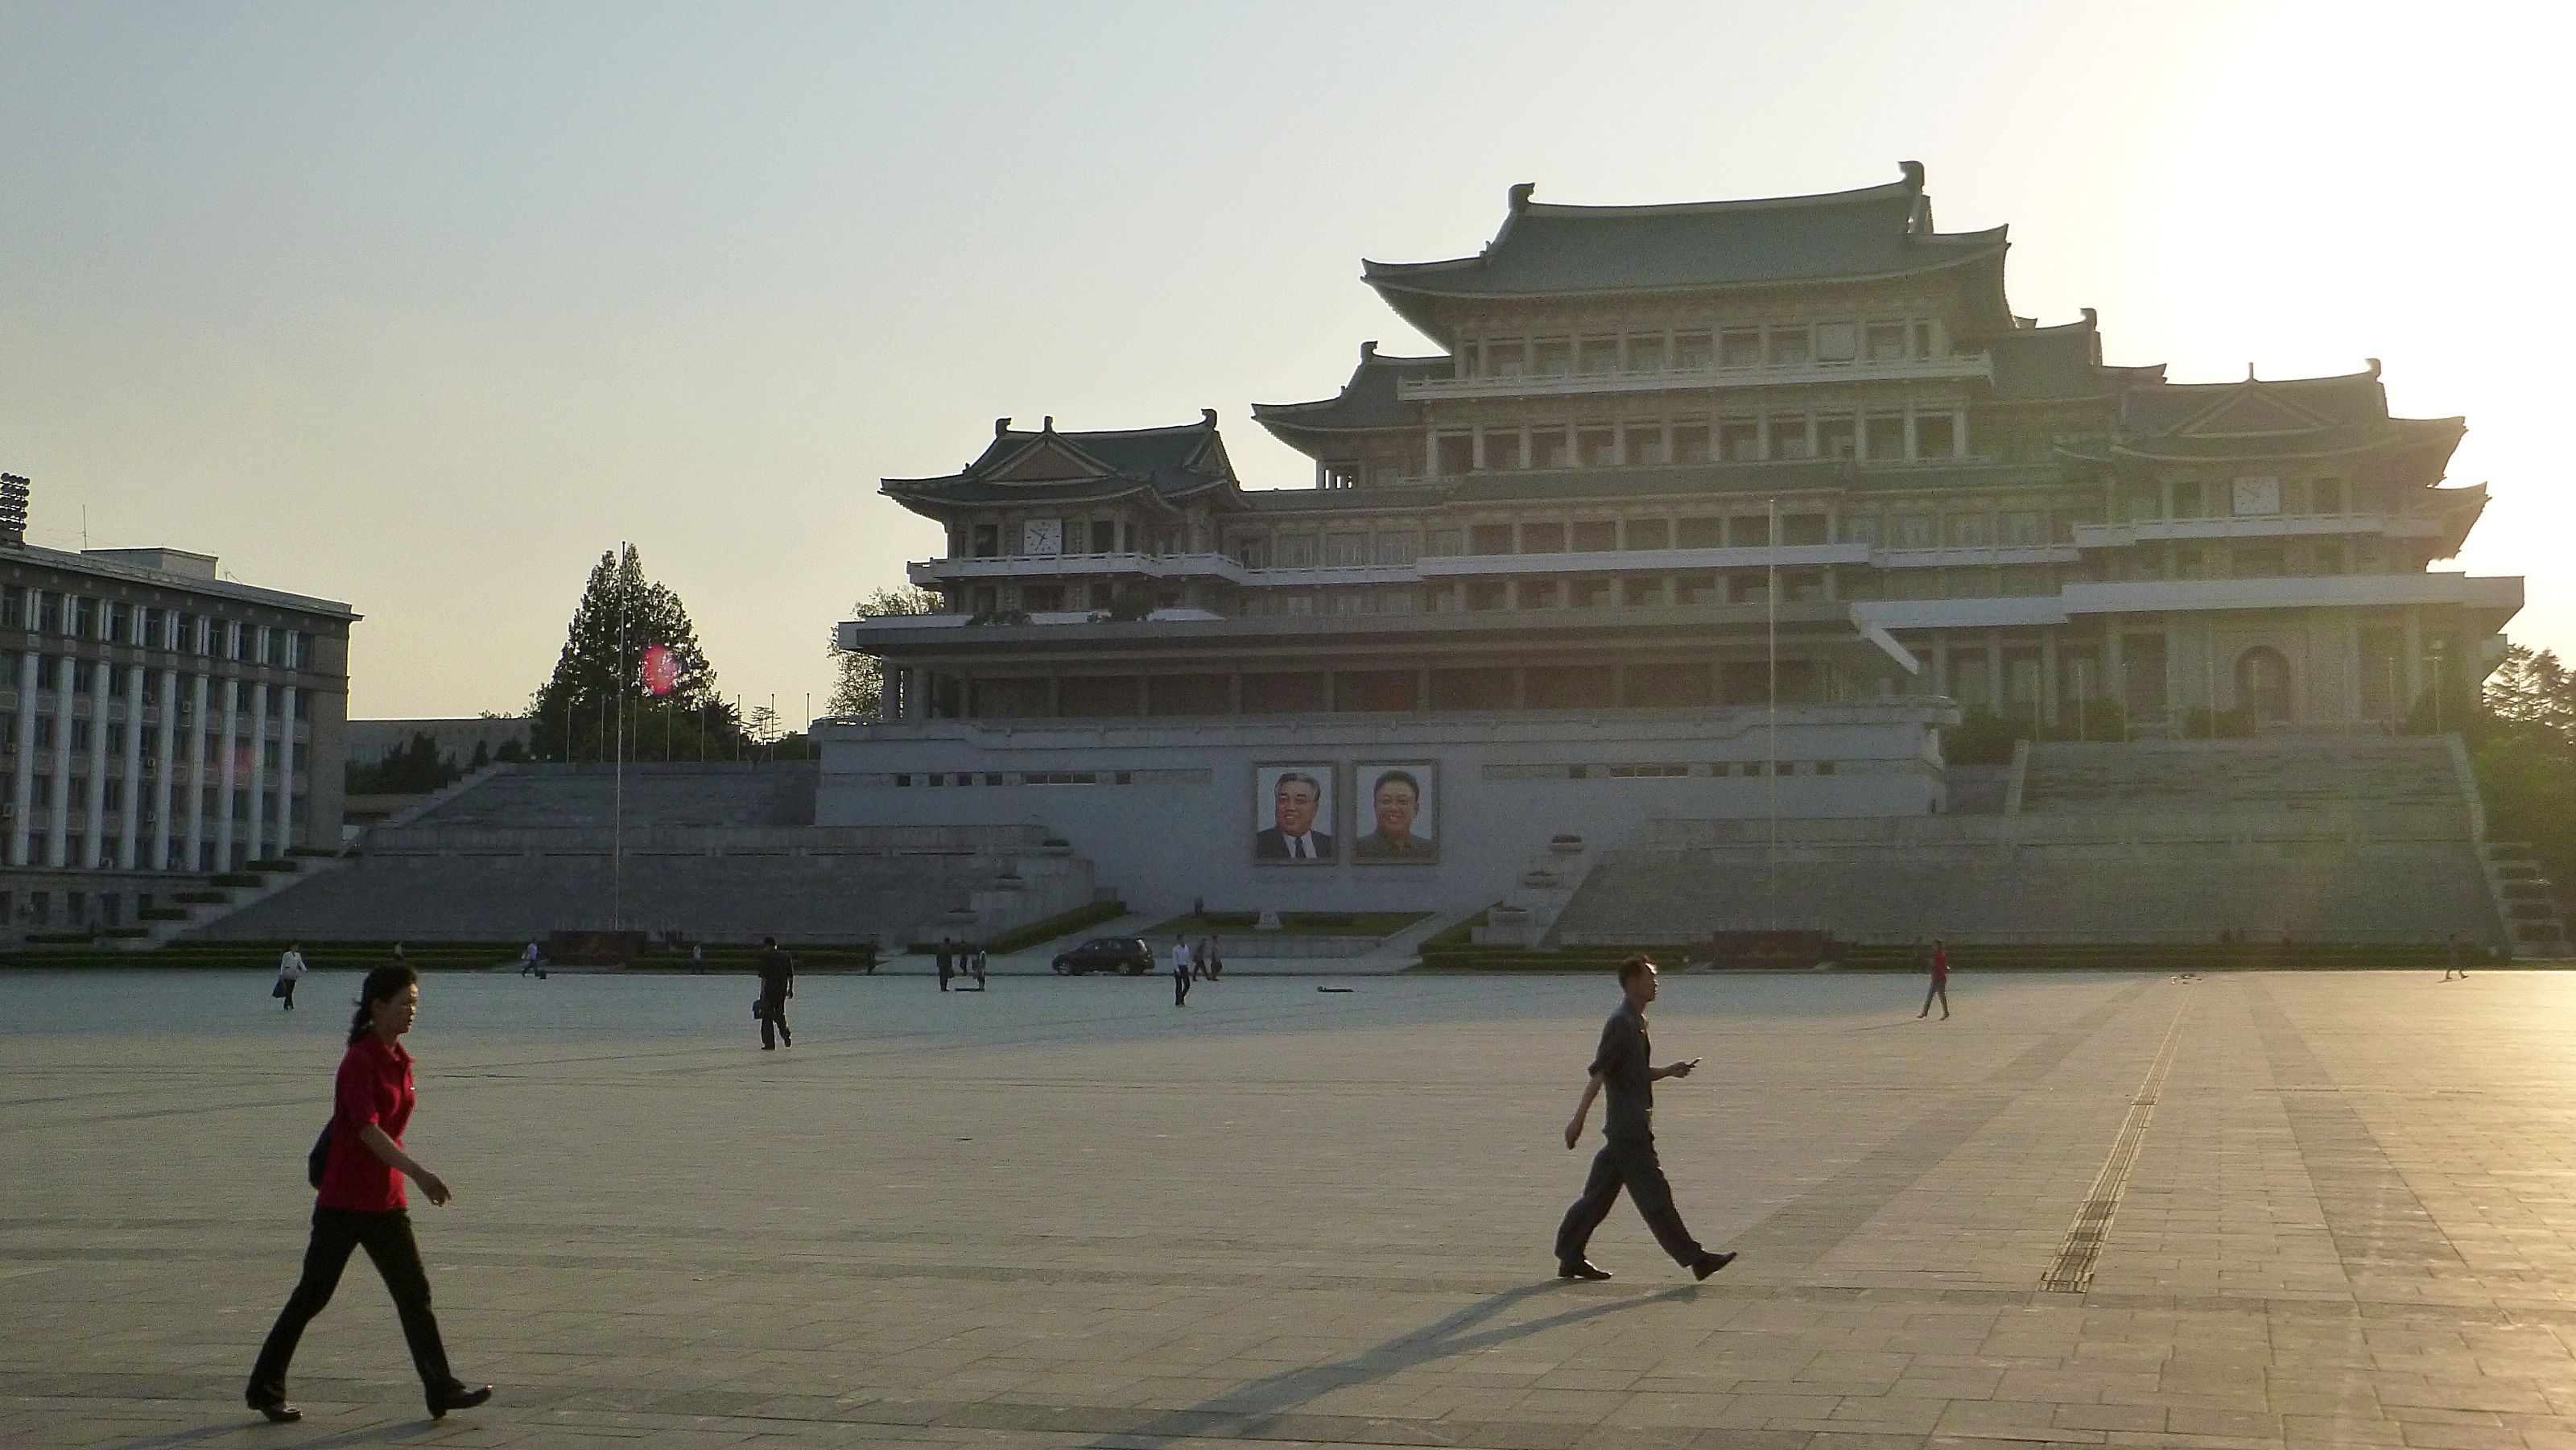 One of the important places in North Korea. Kim Il-sung Square in Pyongyang during sunset.